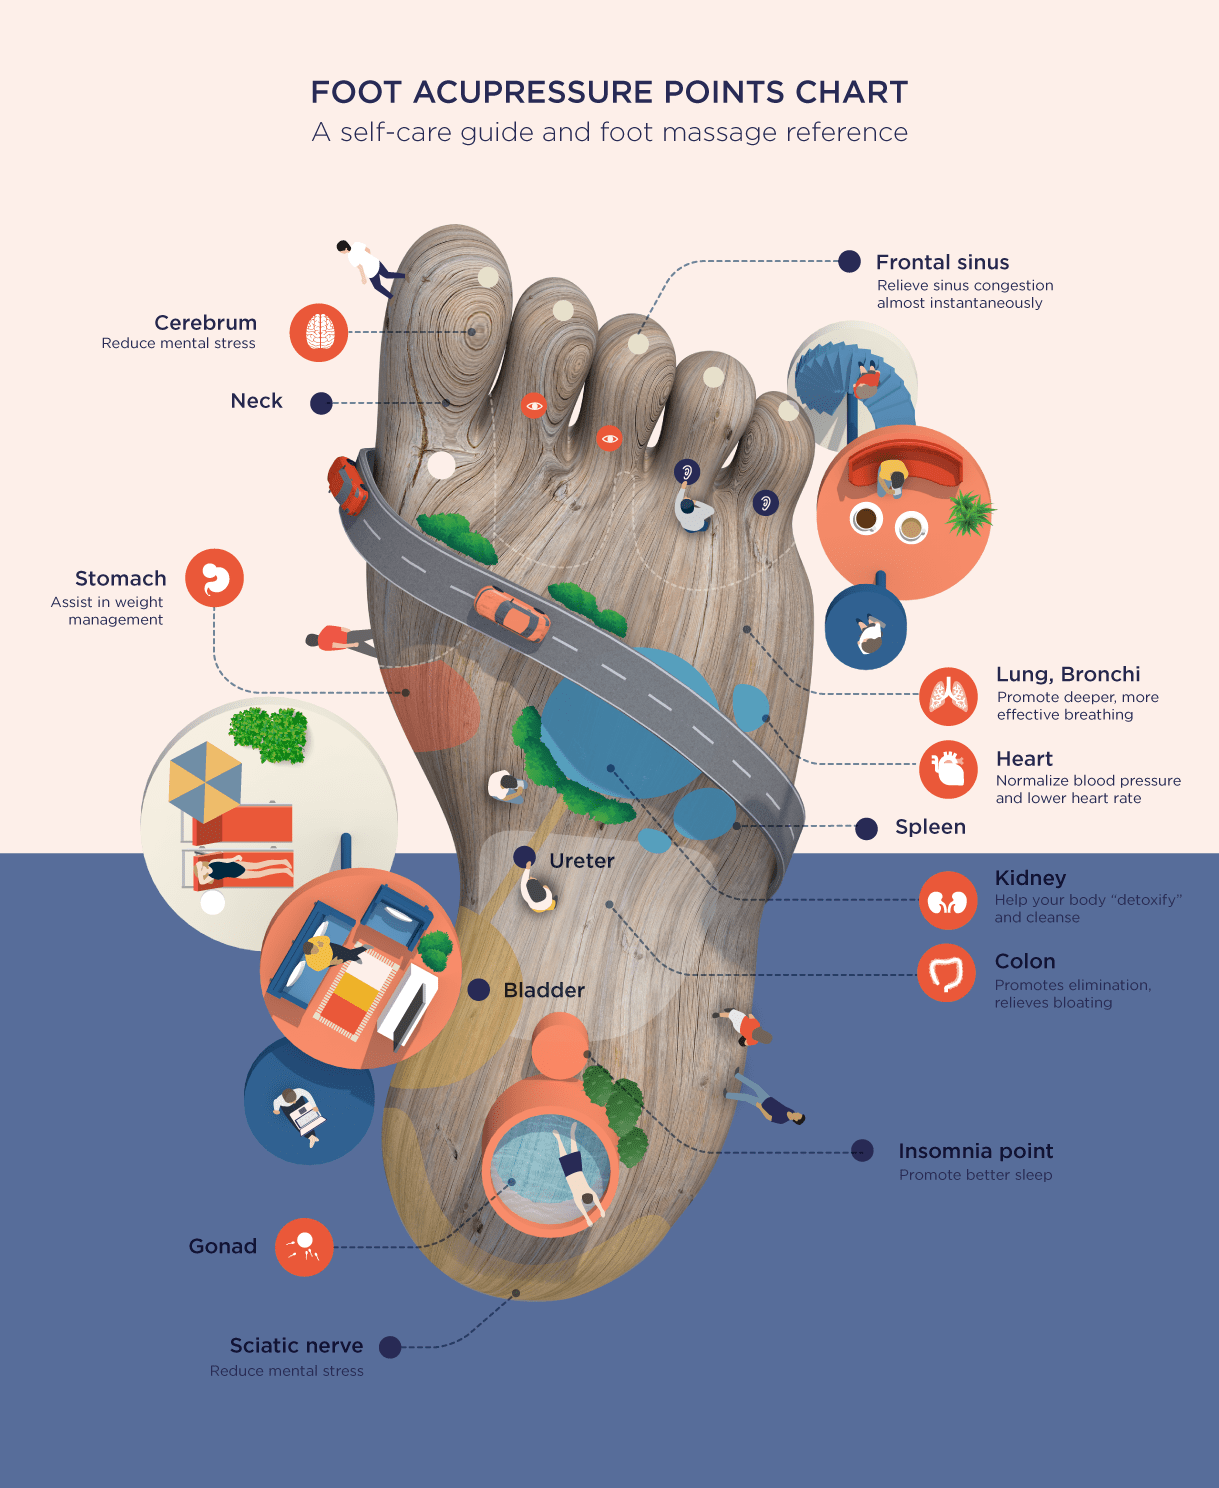 Foot Acupressure Points Chart A Self Care And Foot Massage Reference